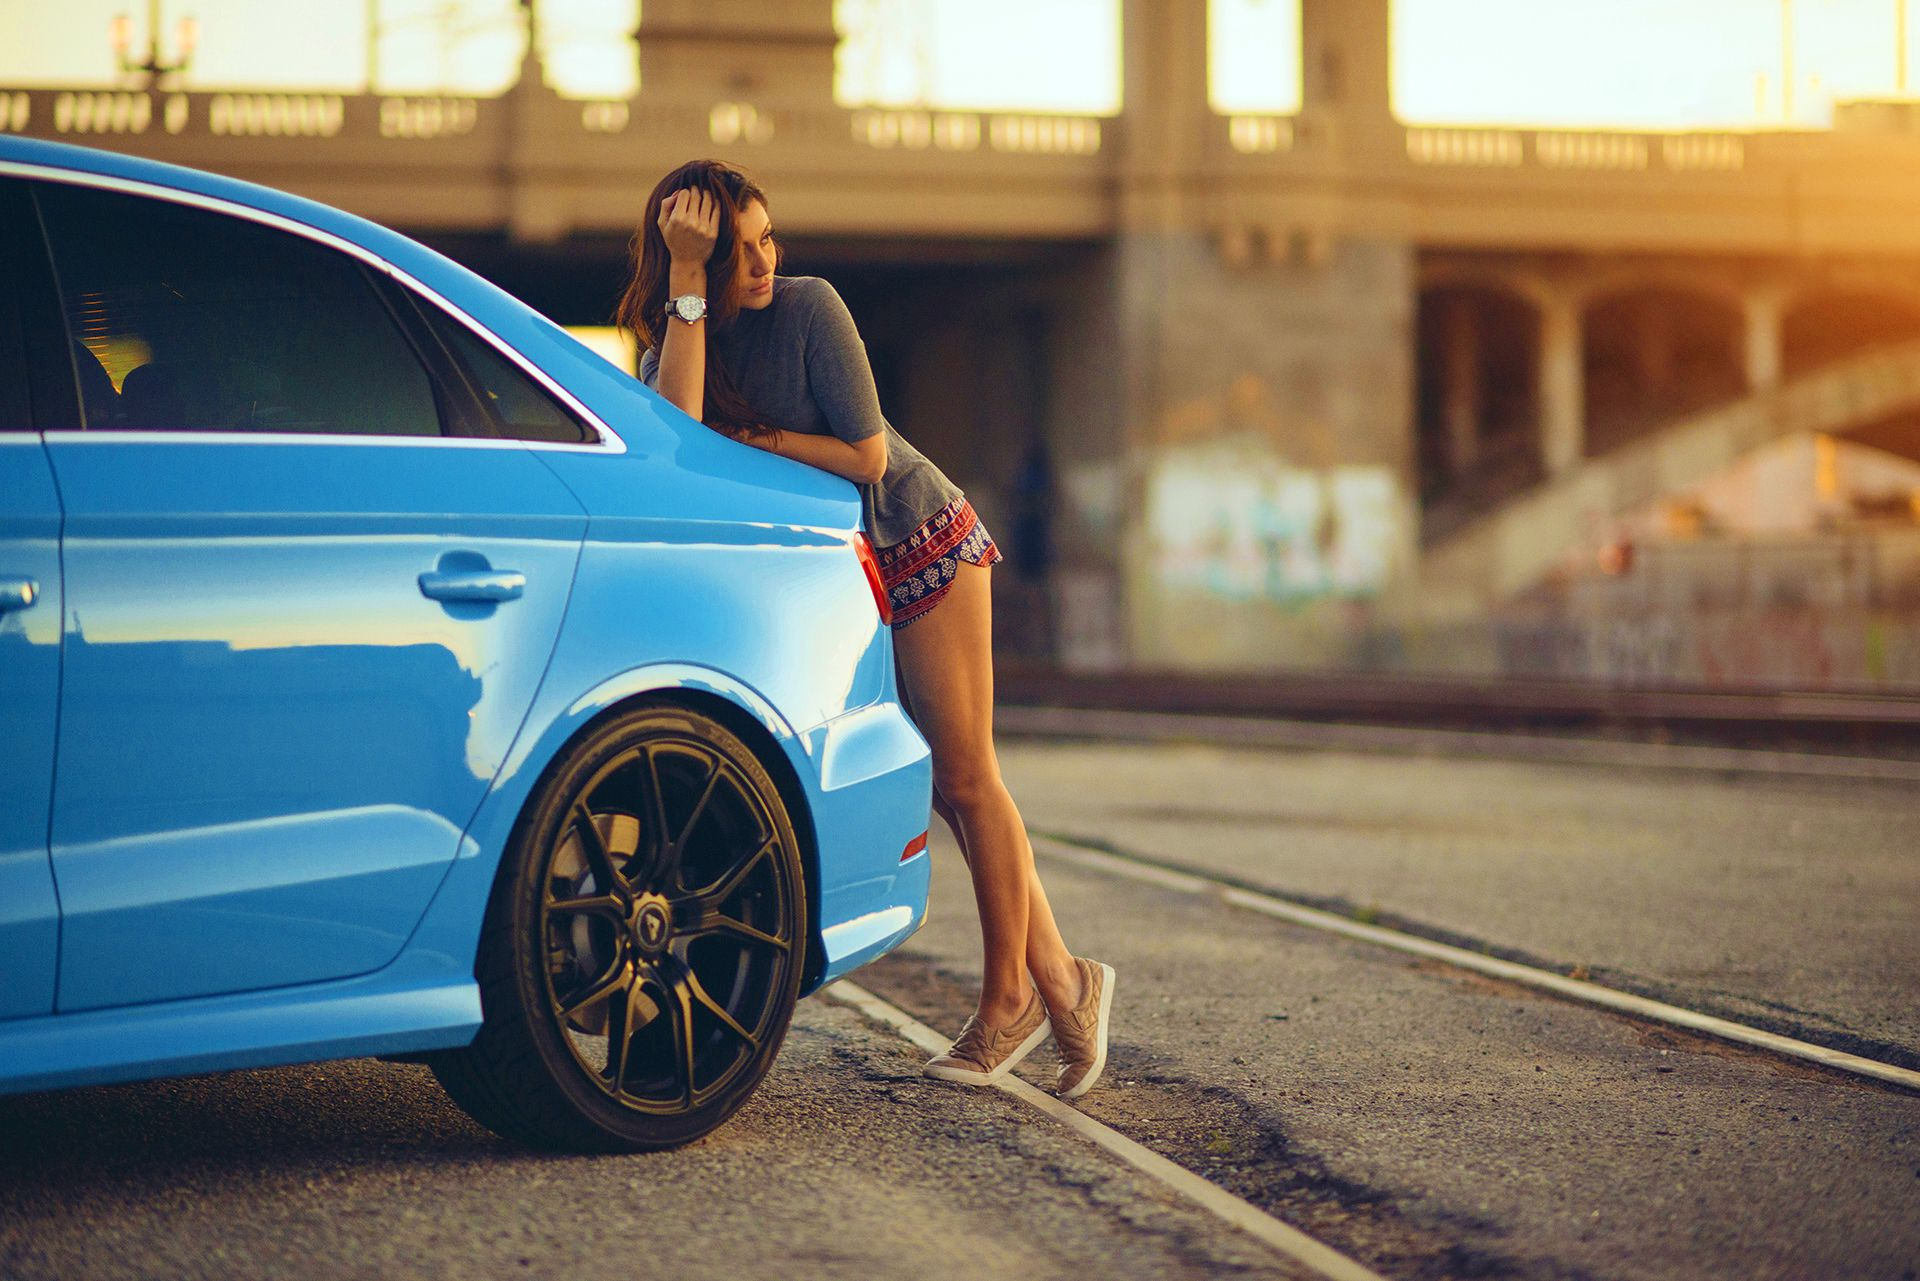 M Dchen Autos Full Hd Wallpaper And Hintergrund Audi Riviera Blue Audi Rs3 707041 Hd Wallpaper Backgrounds Download